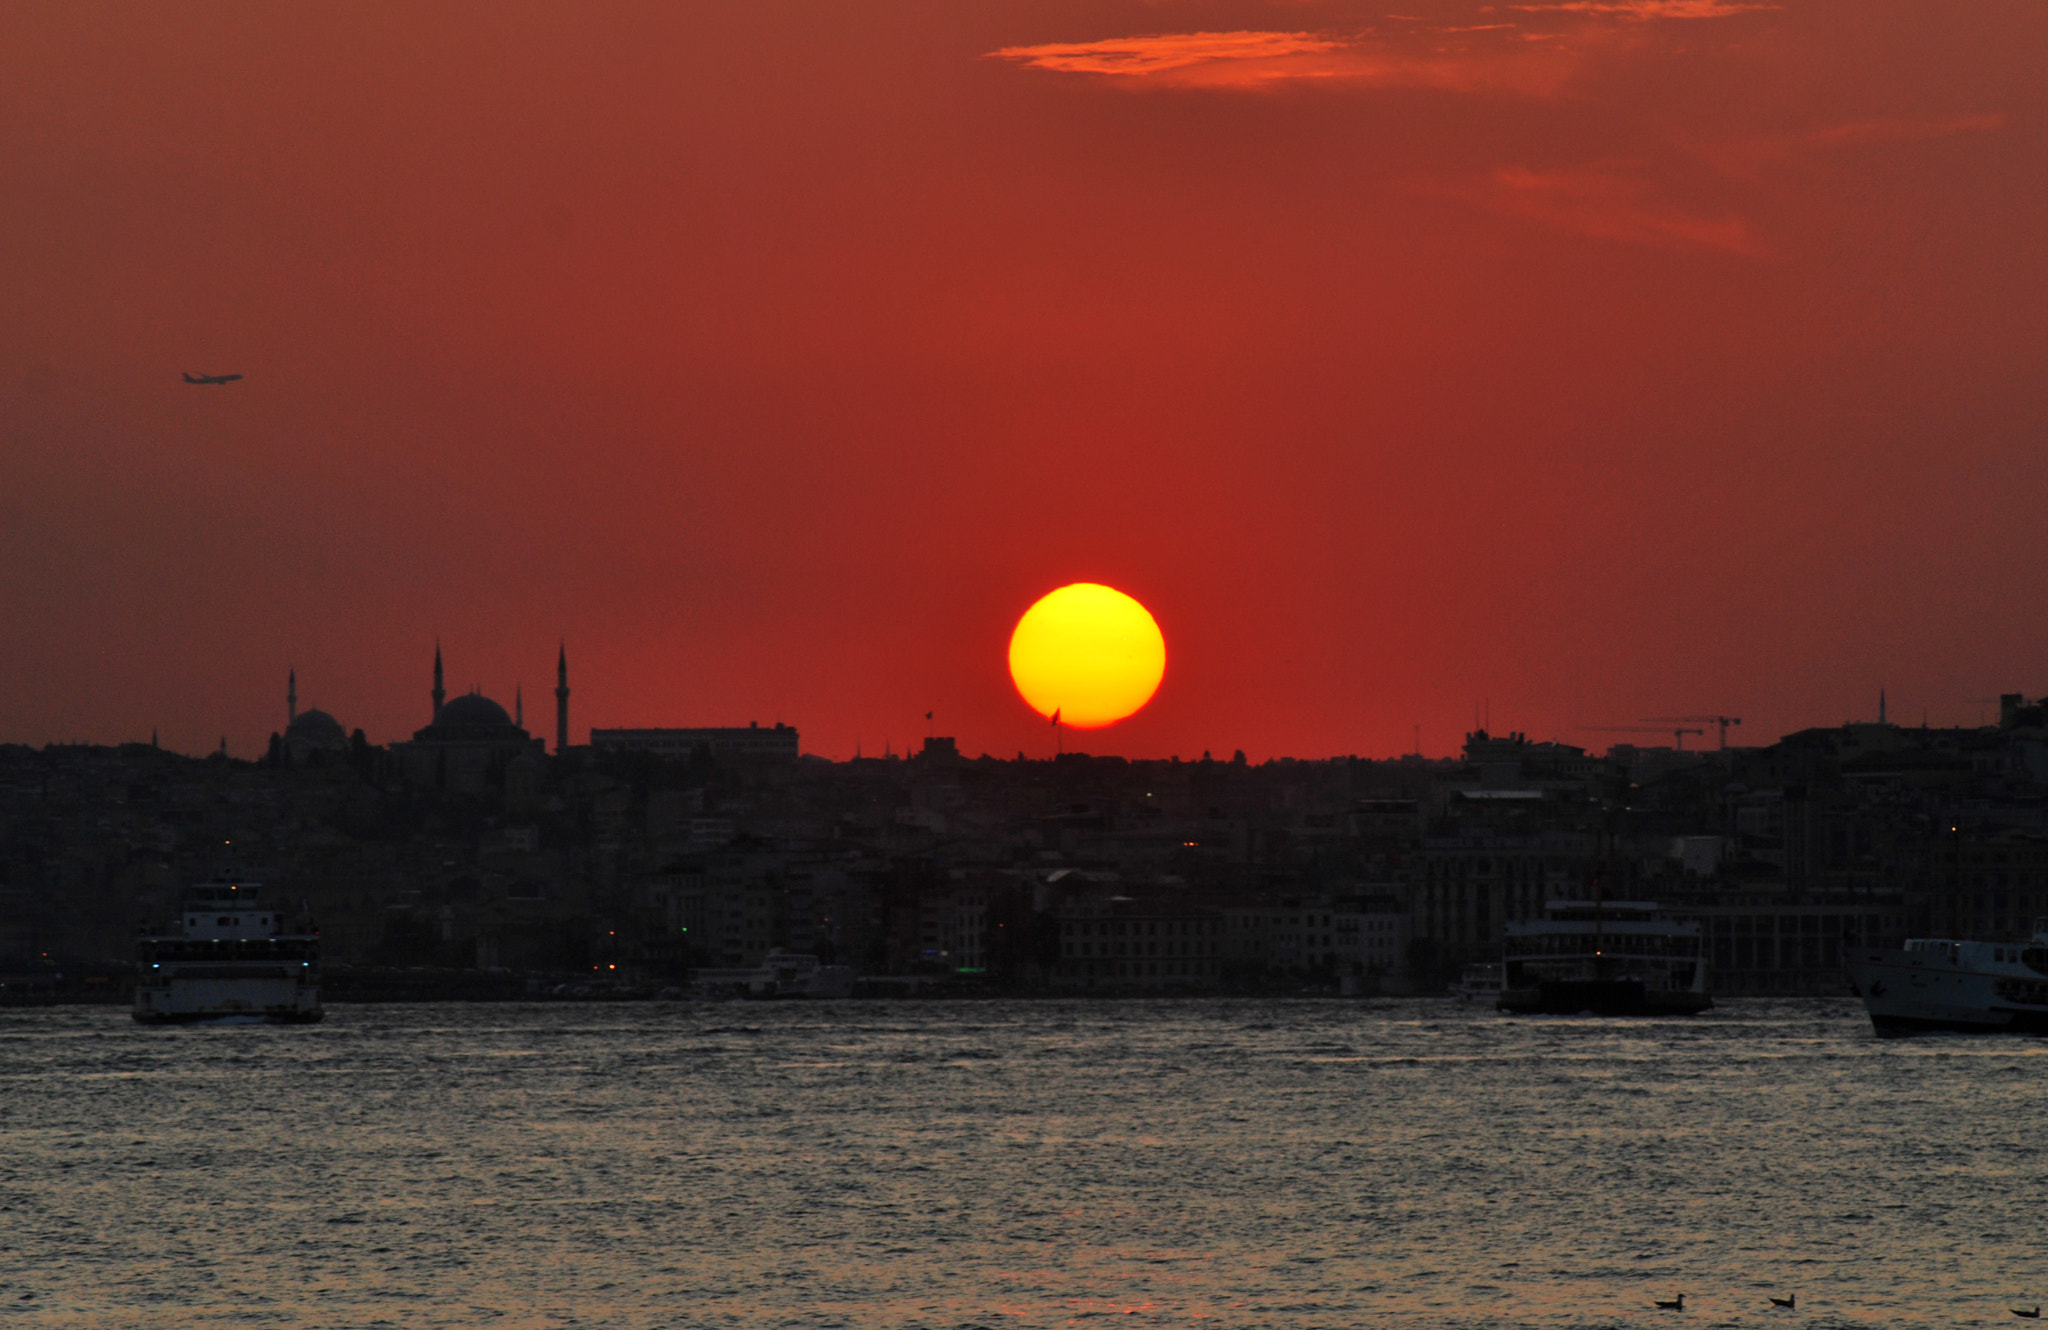 Photograph Sunset in Istanbul by Atakan Divitlioğlu on 500px